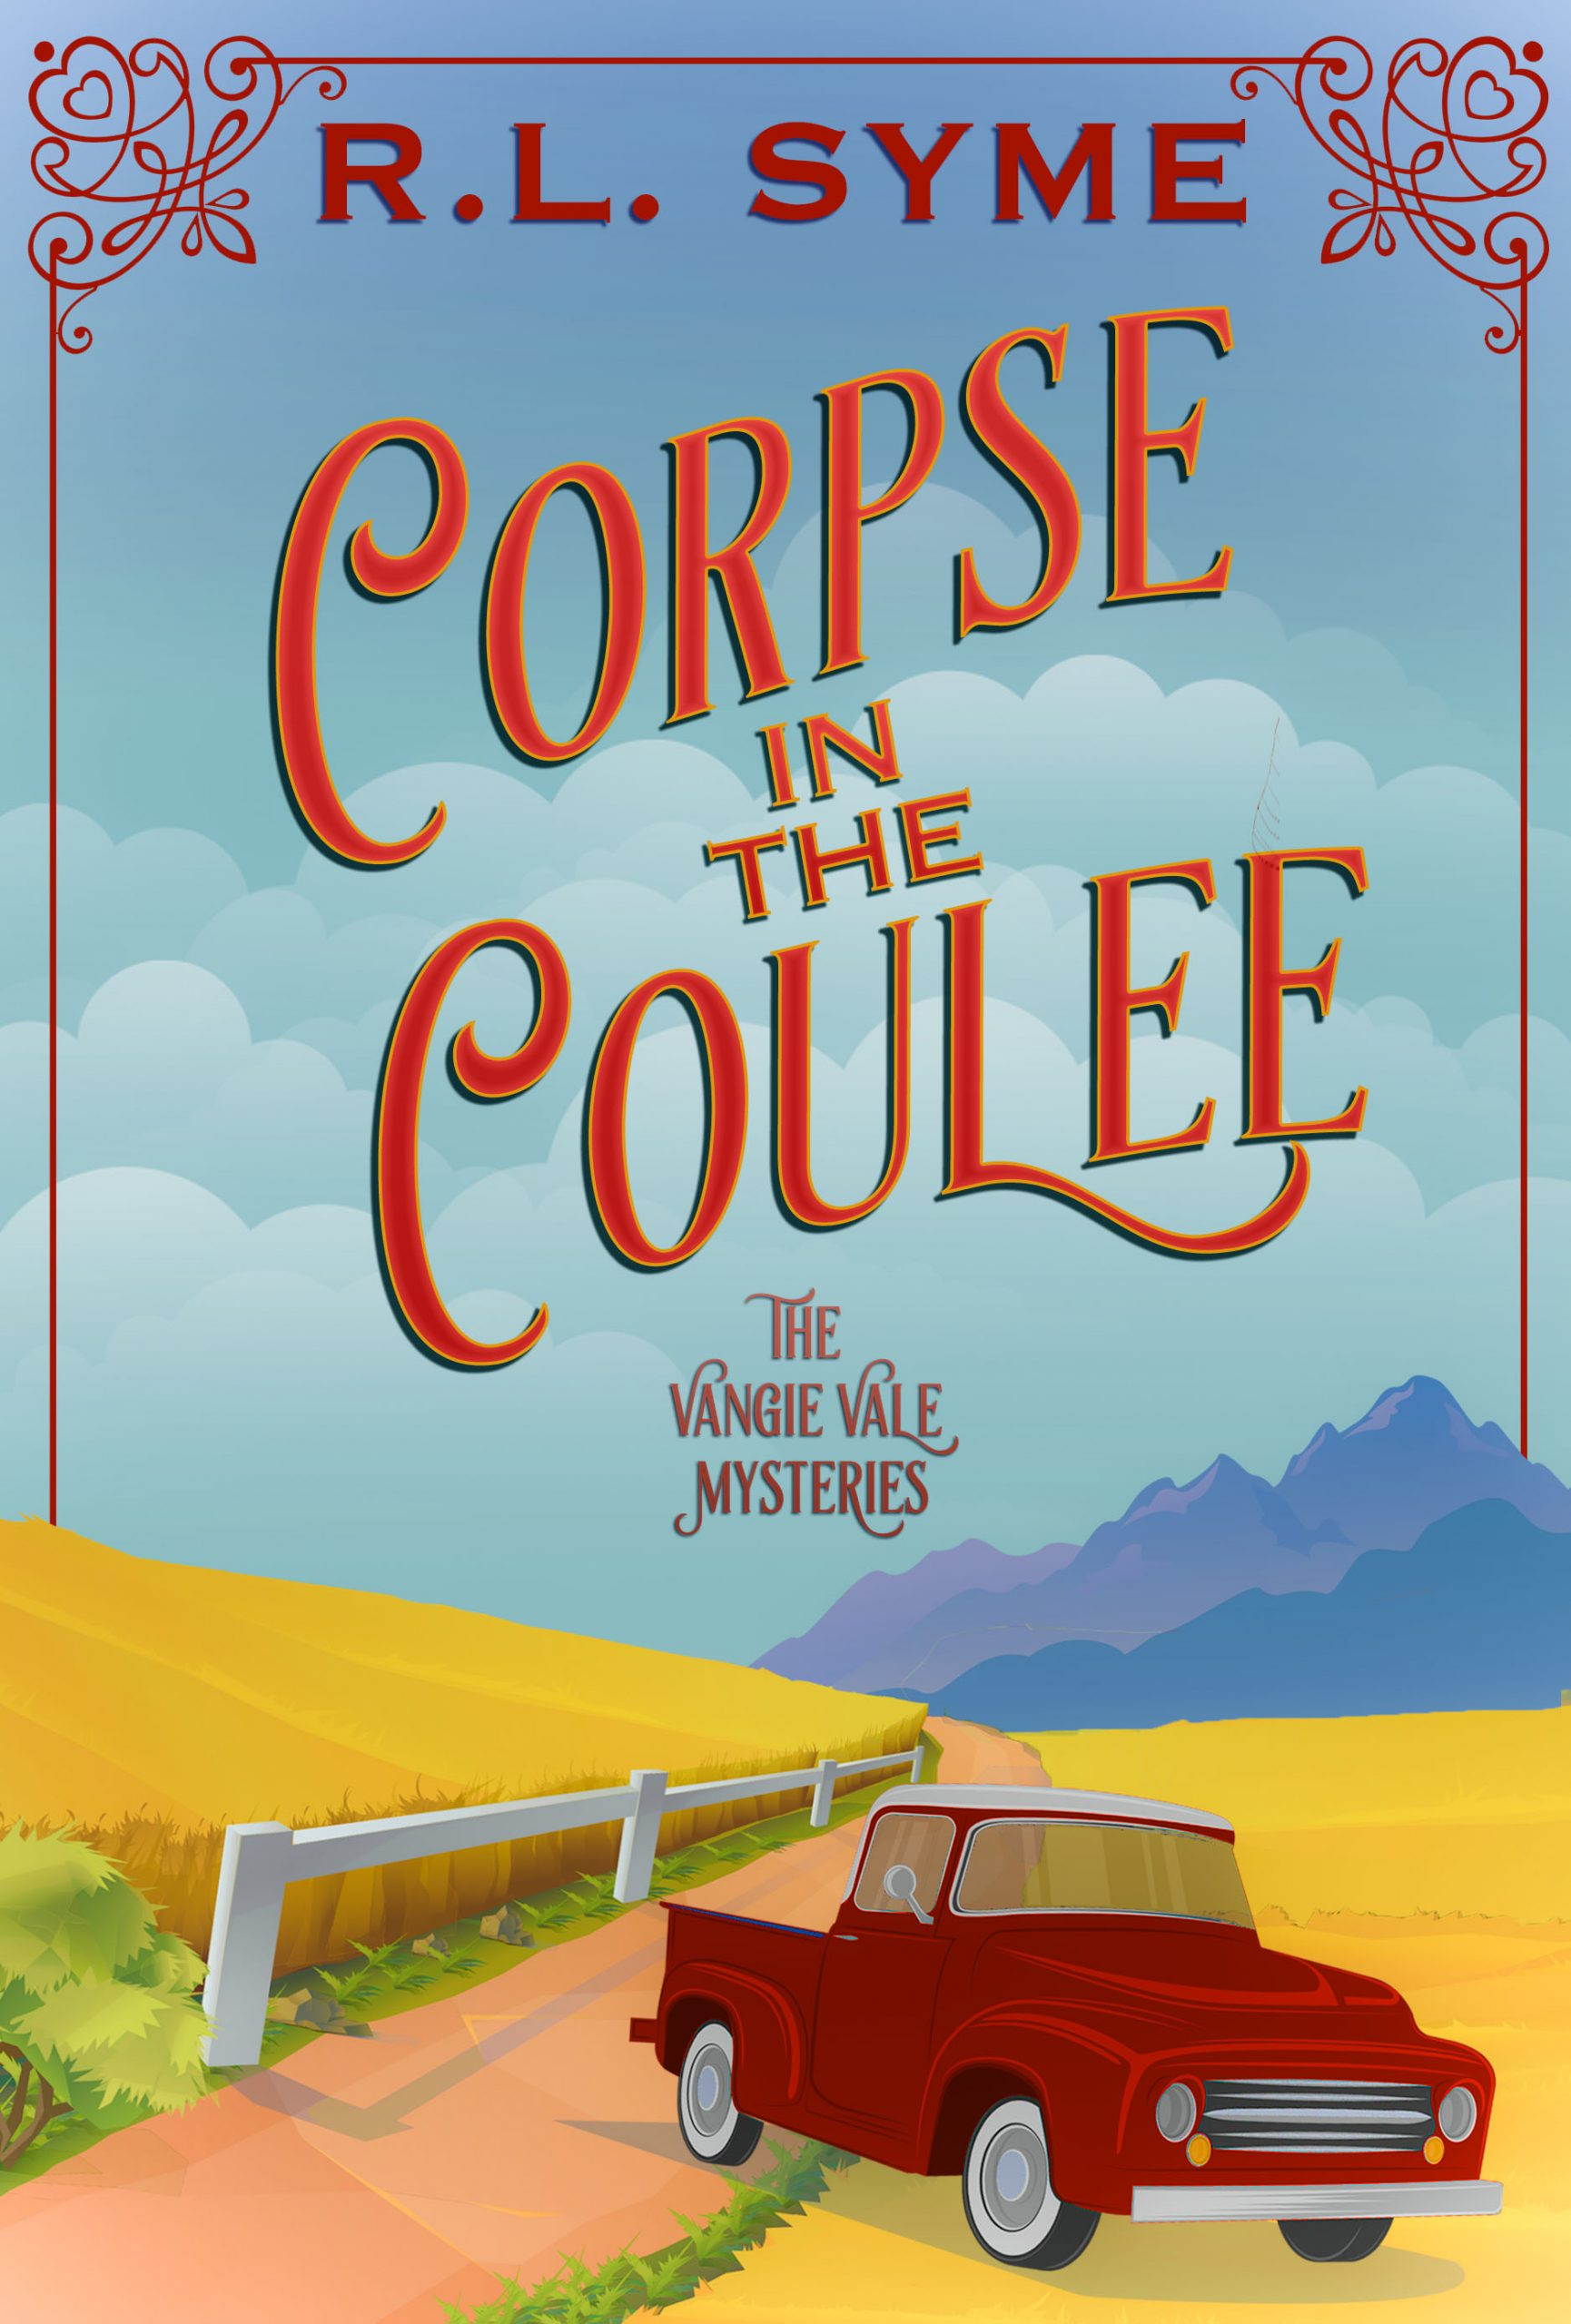 Corpse in the Coulee